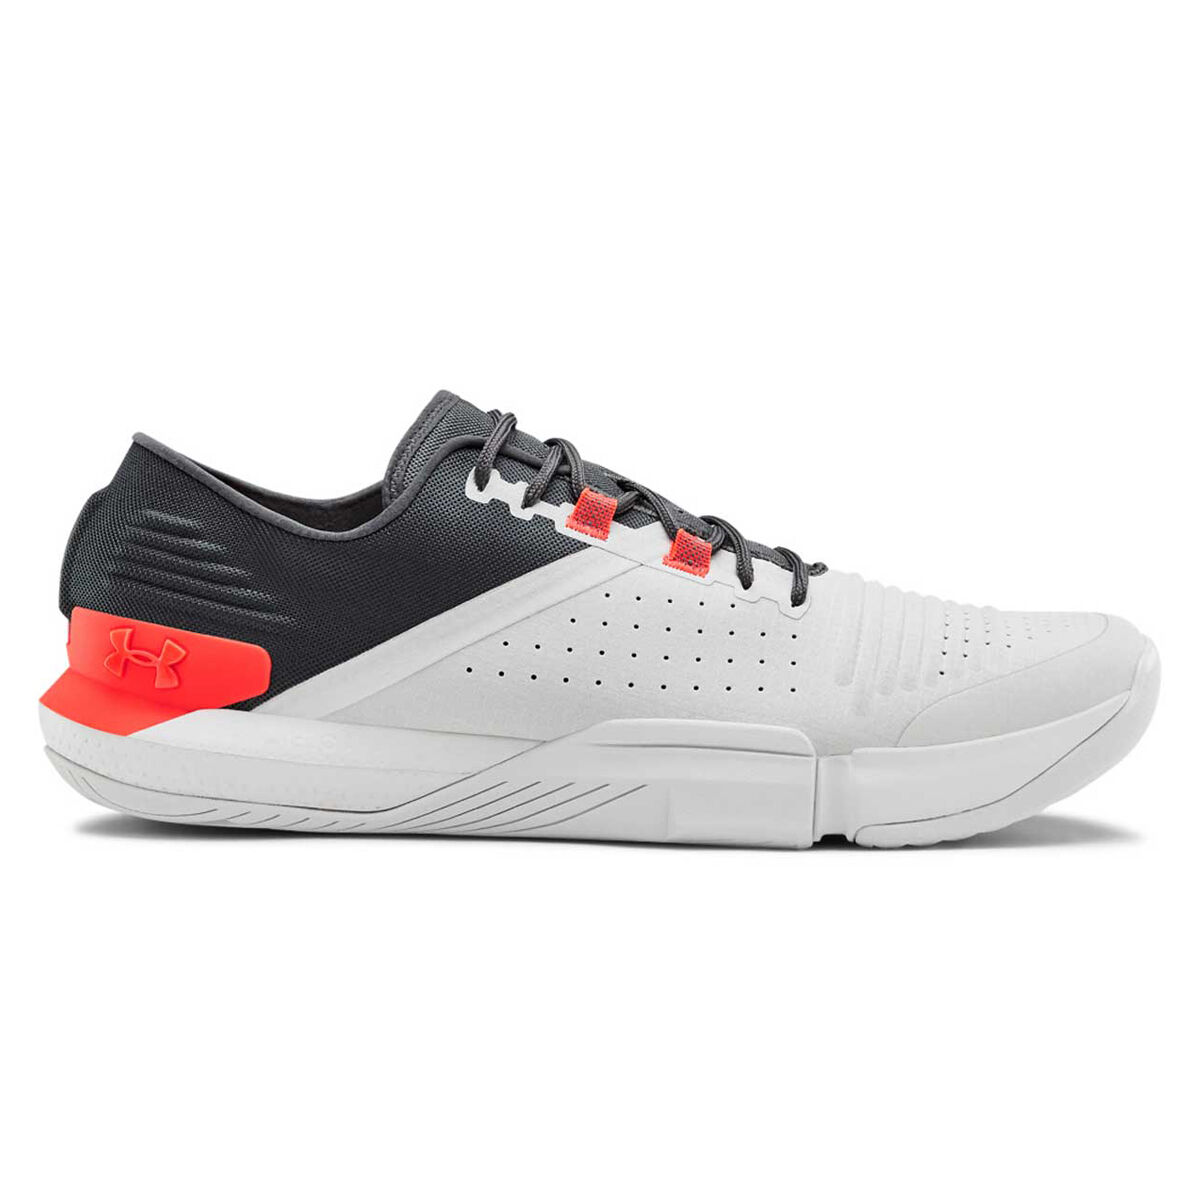 Under Armour Tribase Reign Mens